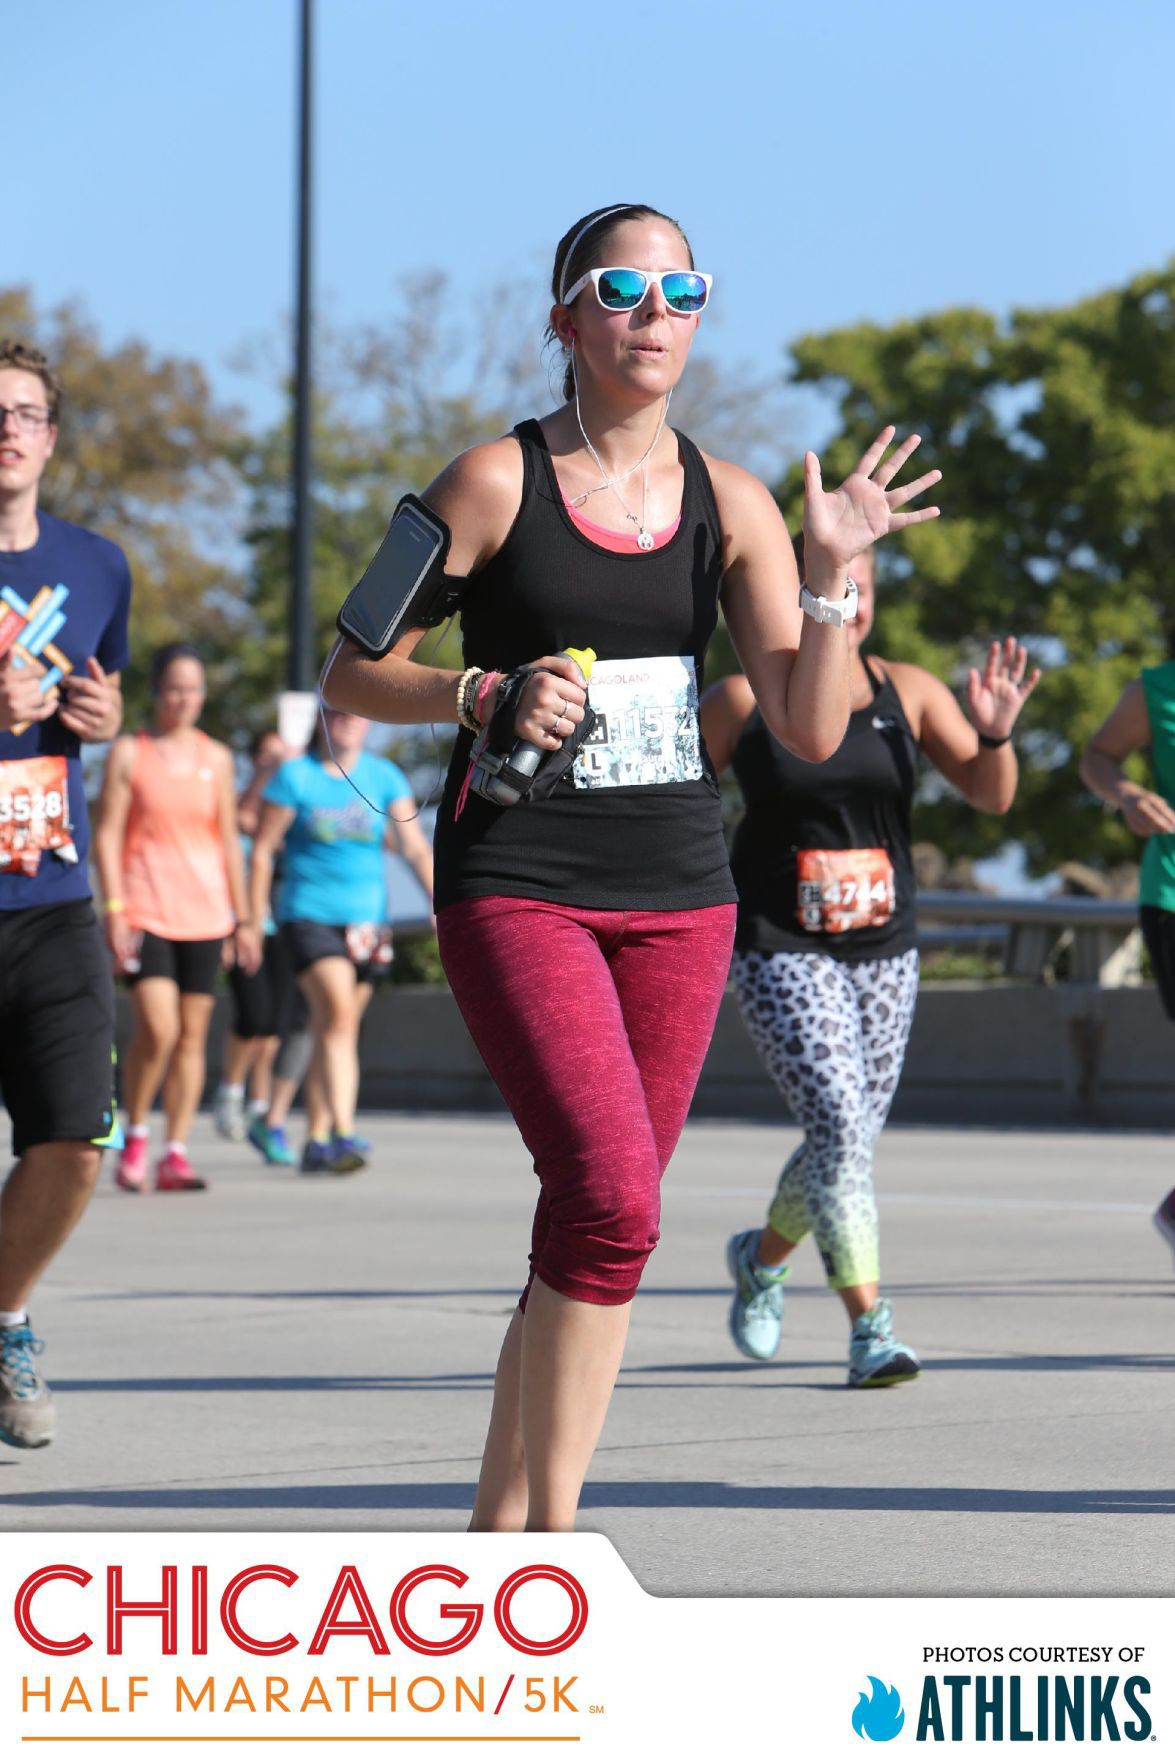 The Unnatural-born Athlete: One last half for 2017 run and done